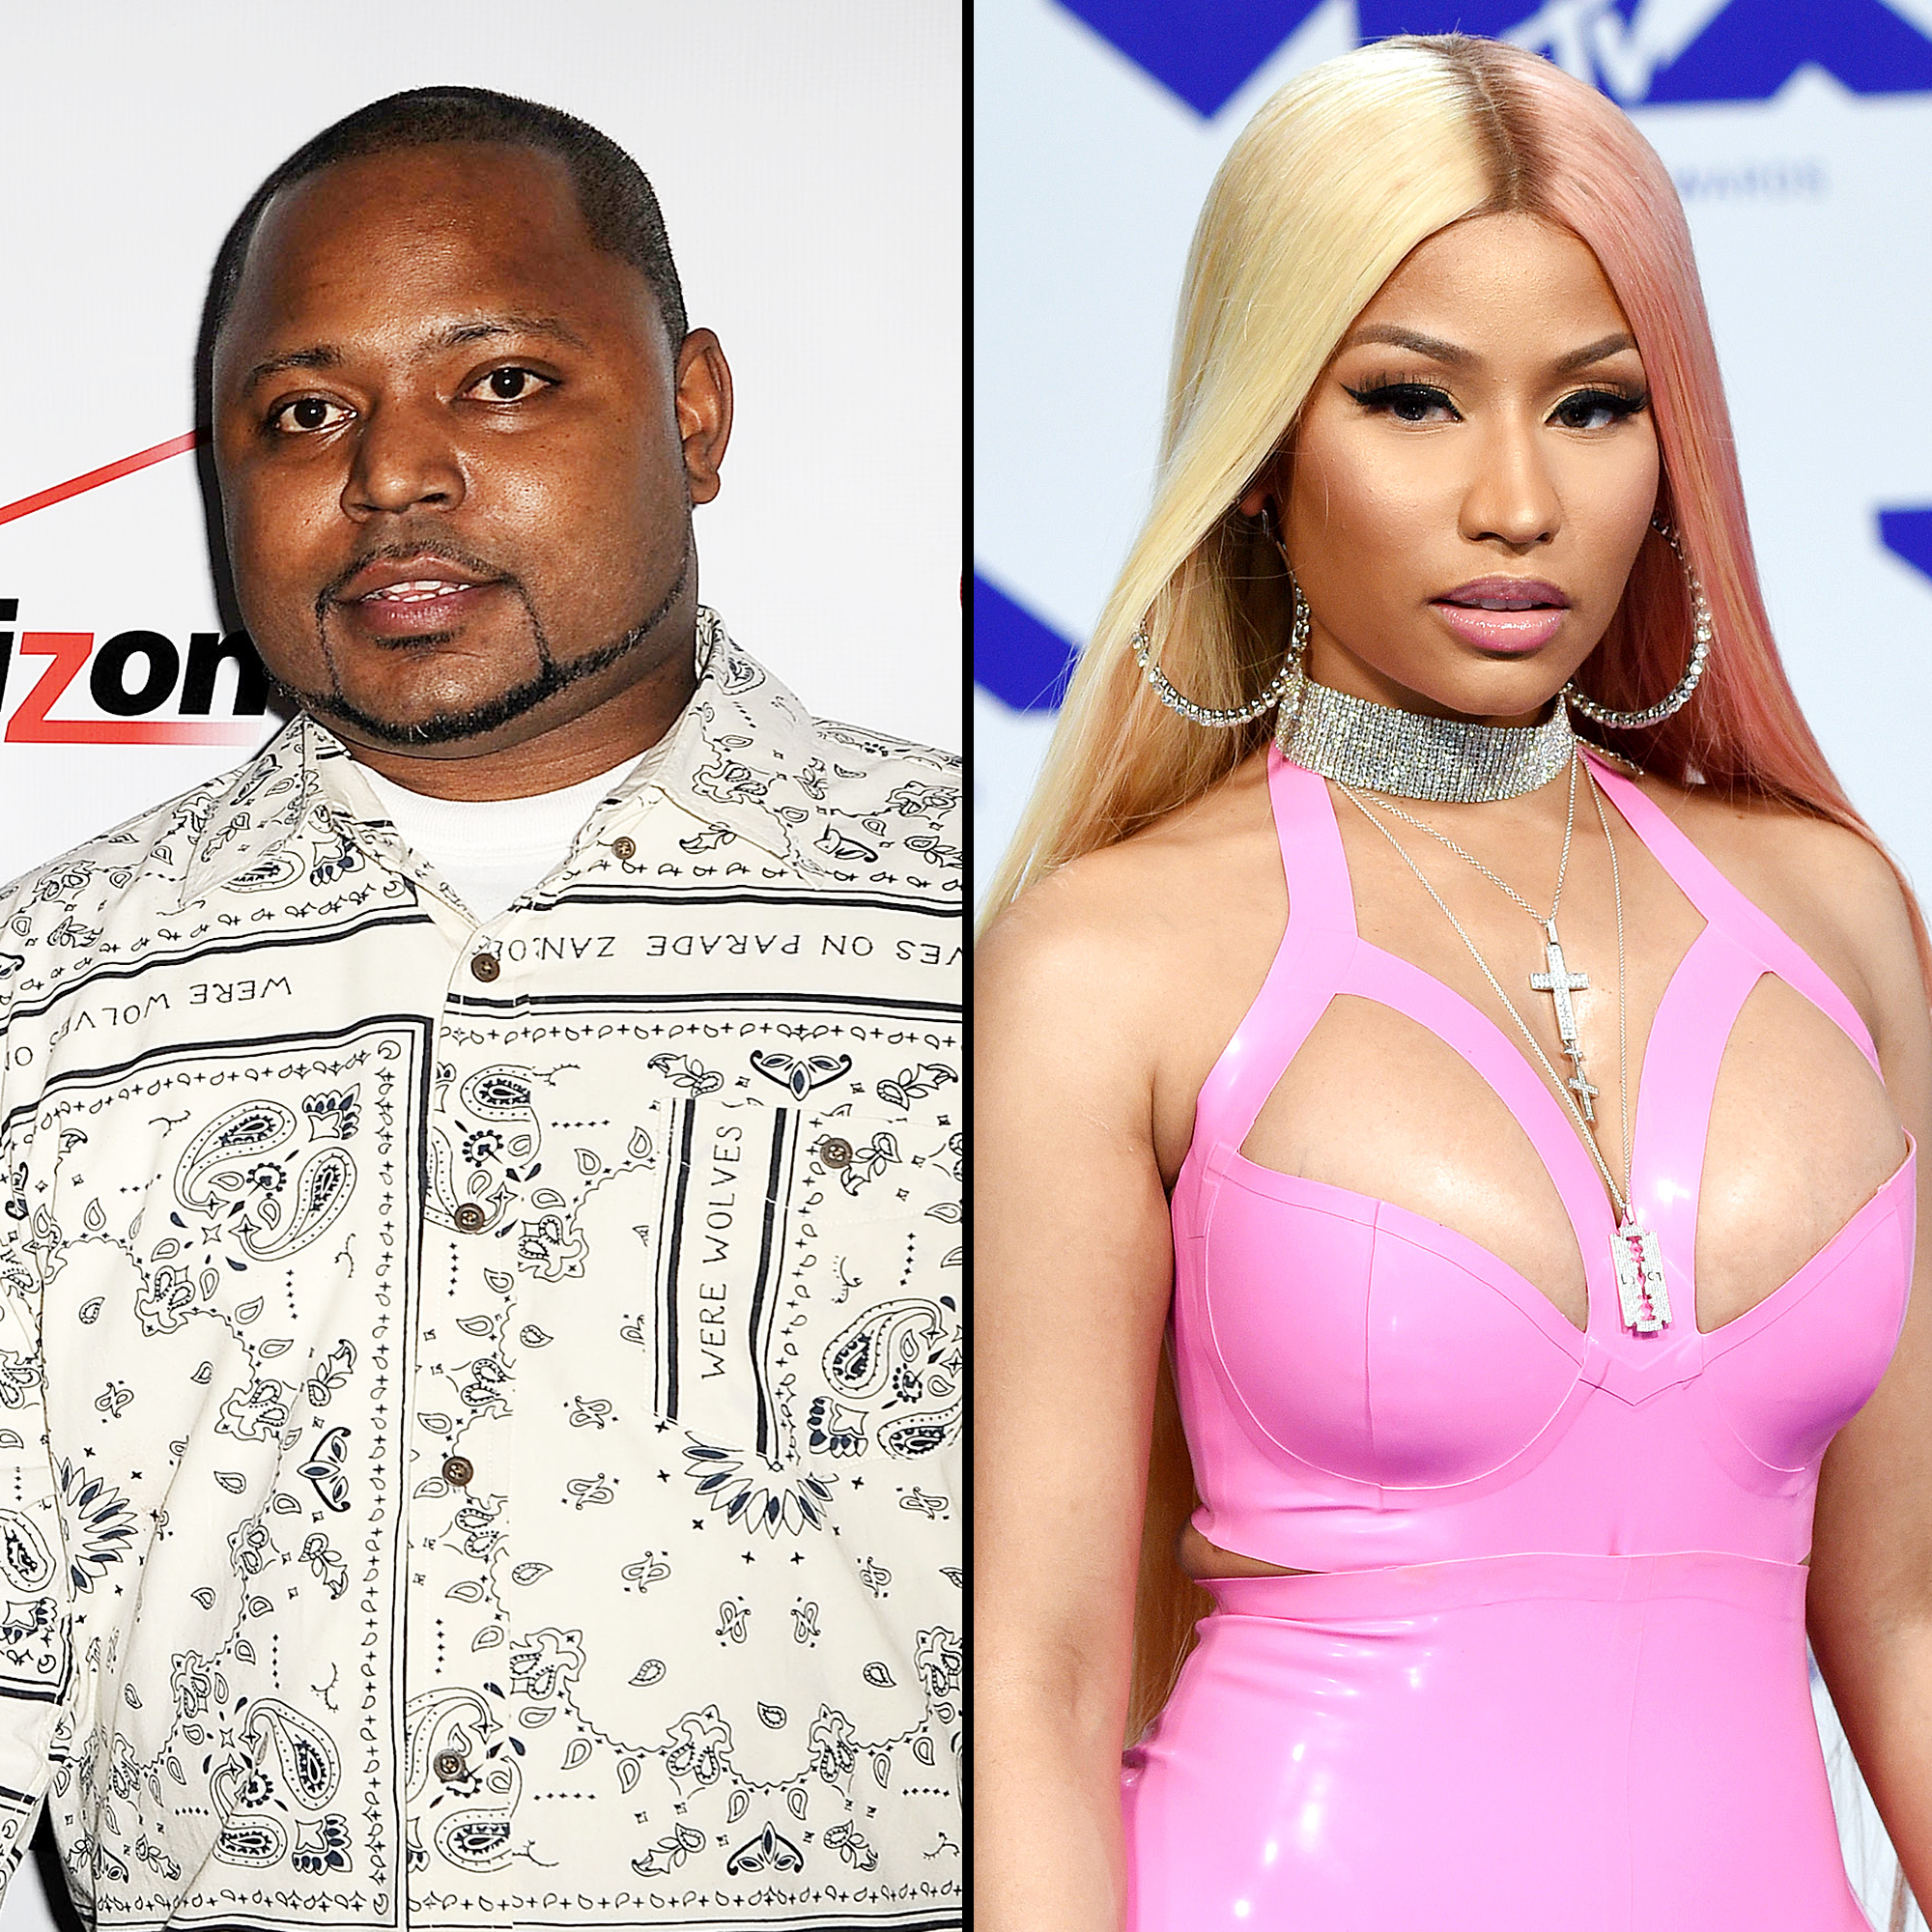 Nicki Minaj's brother convicted of raping stepdaughter in Long Island